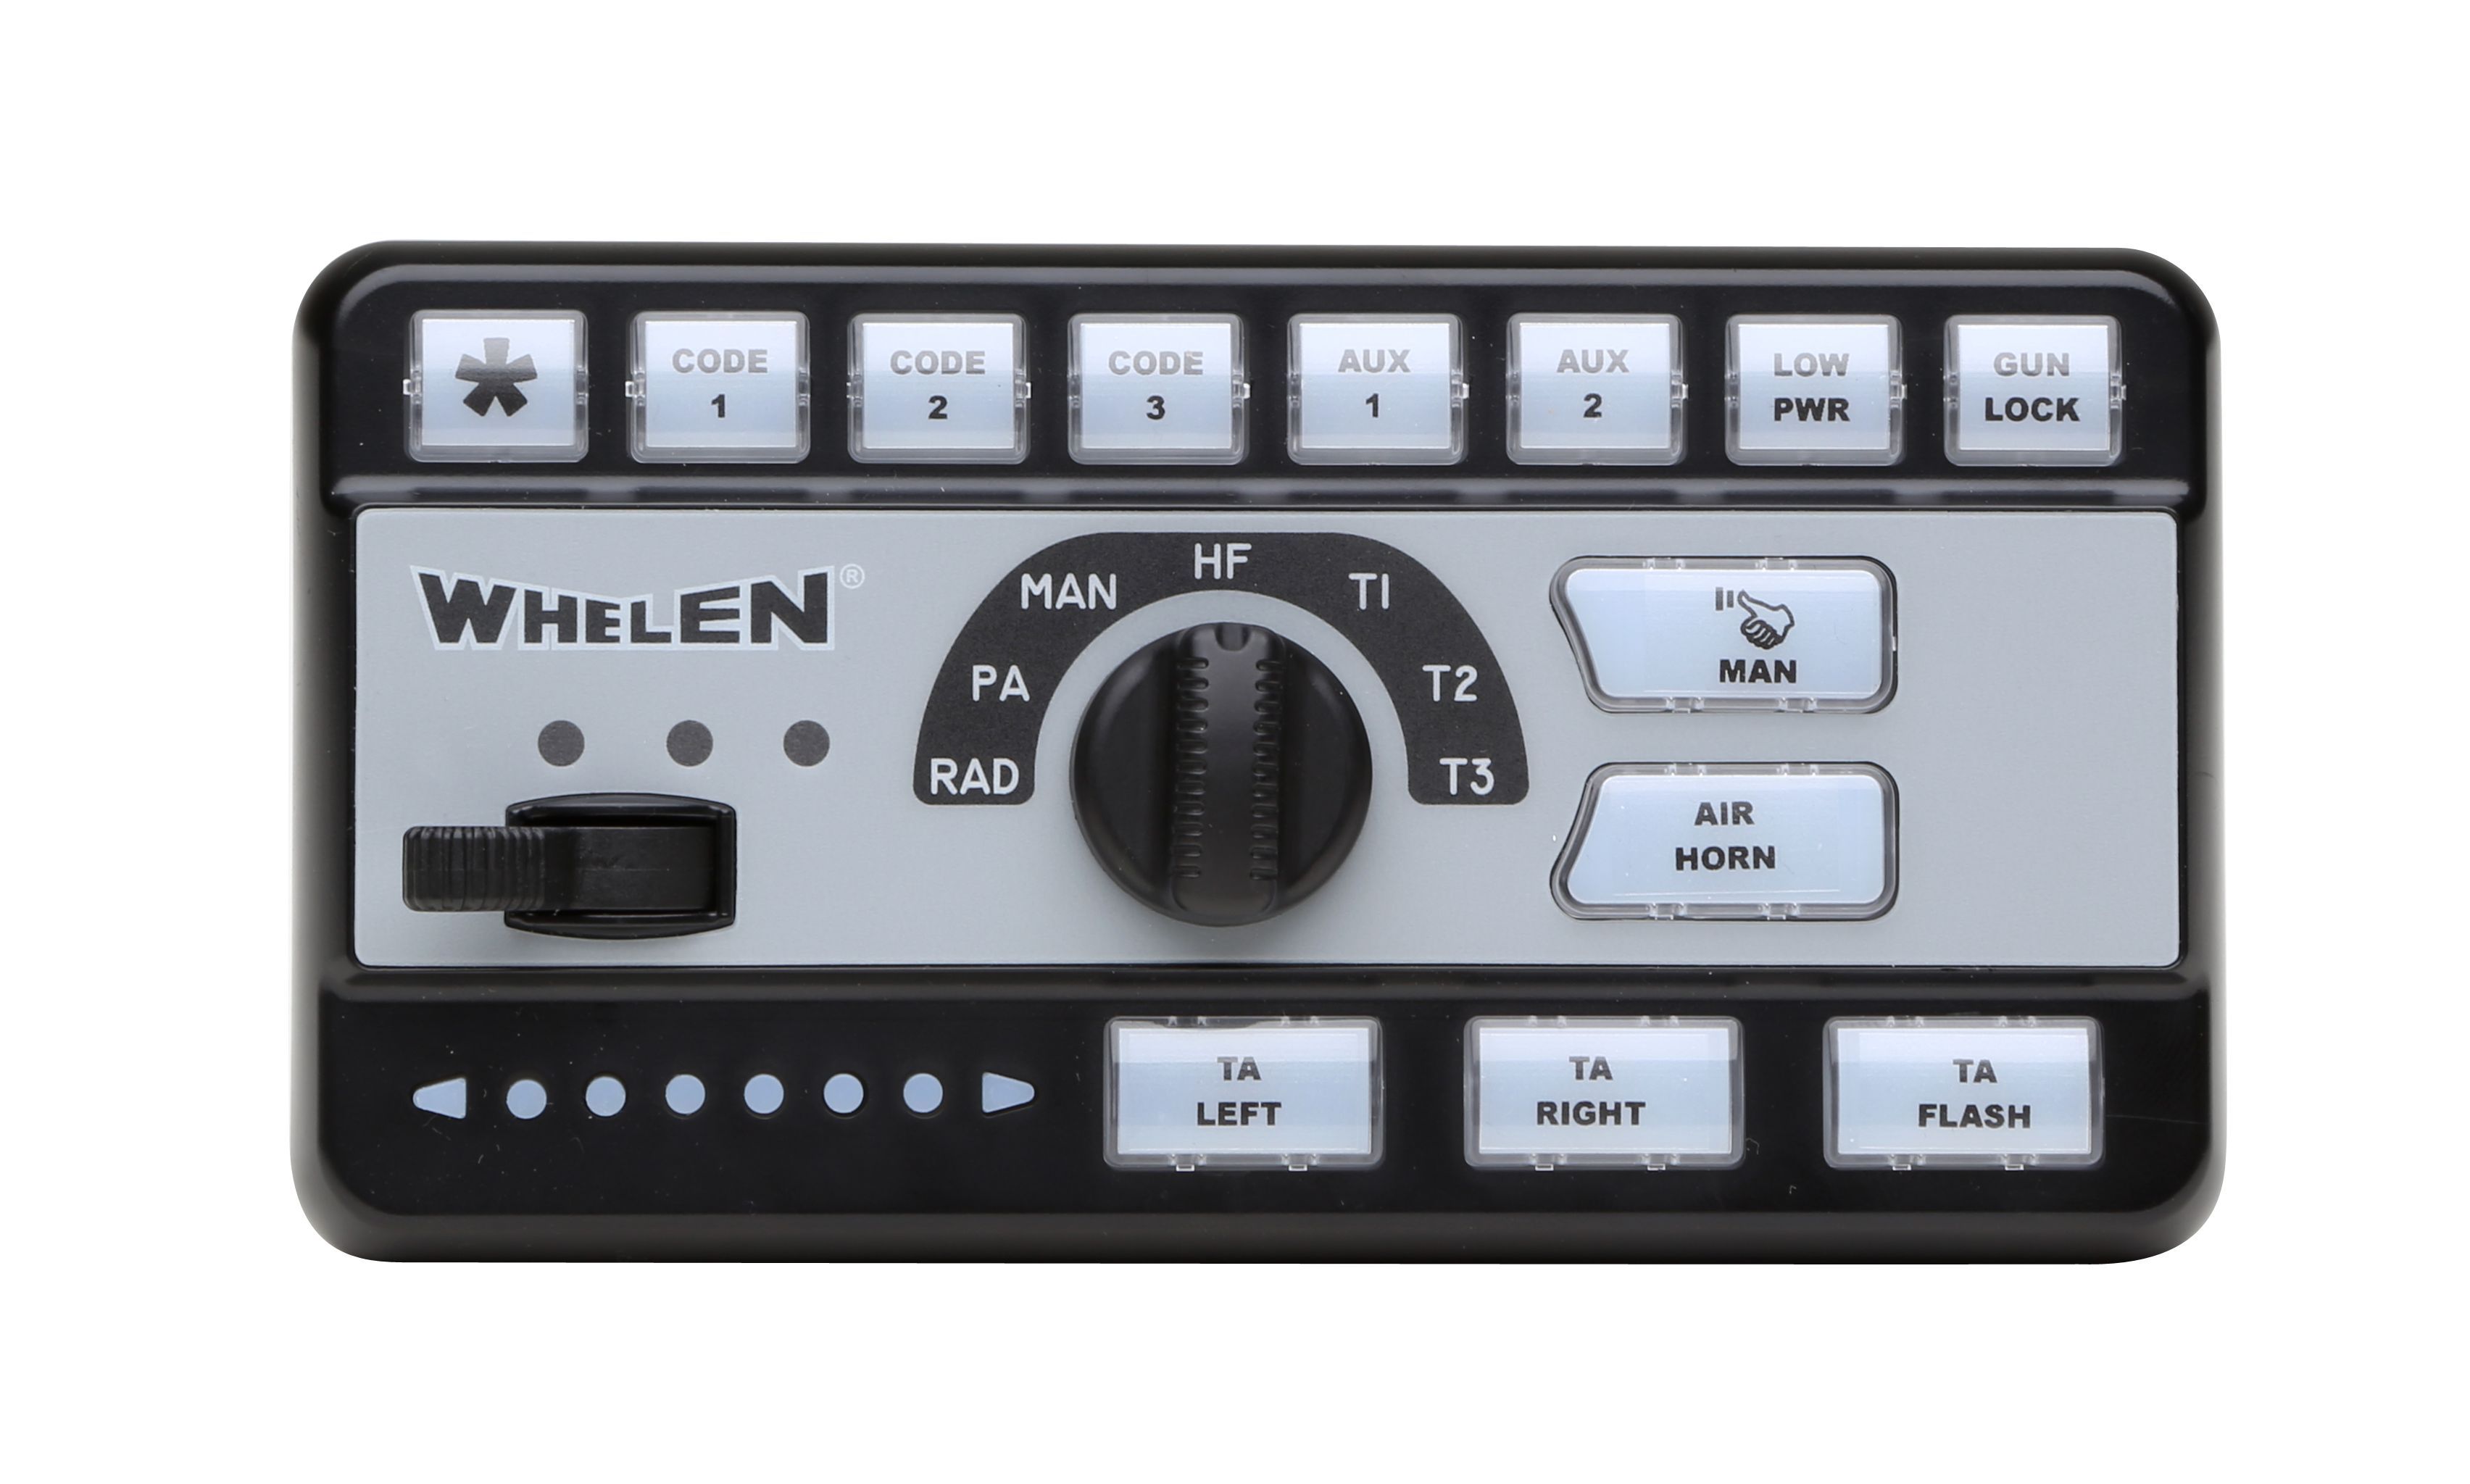 whelen edge wiring    whelen    cencom carbide siren and light control center mhq     whelen    cencom carbide siren and light control center mhq